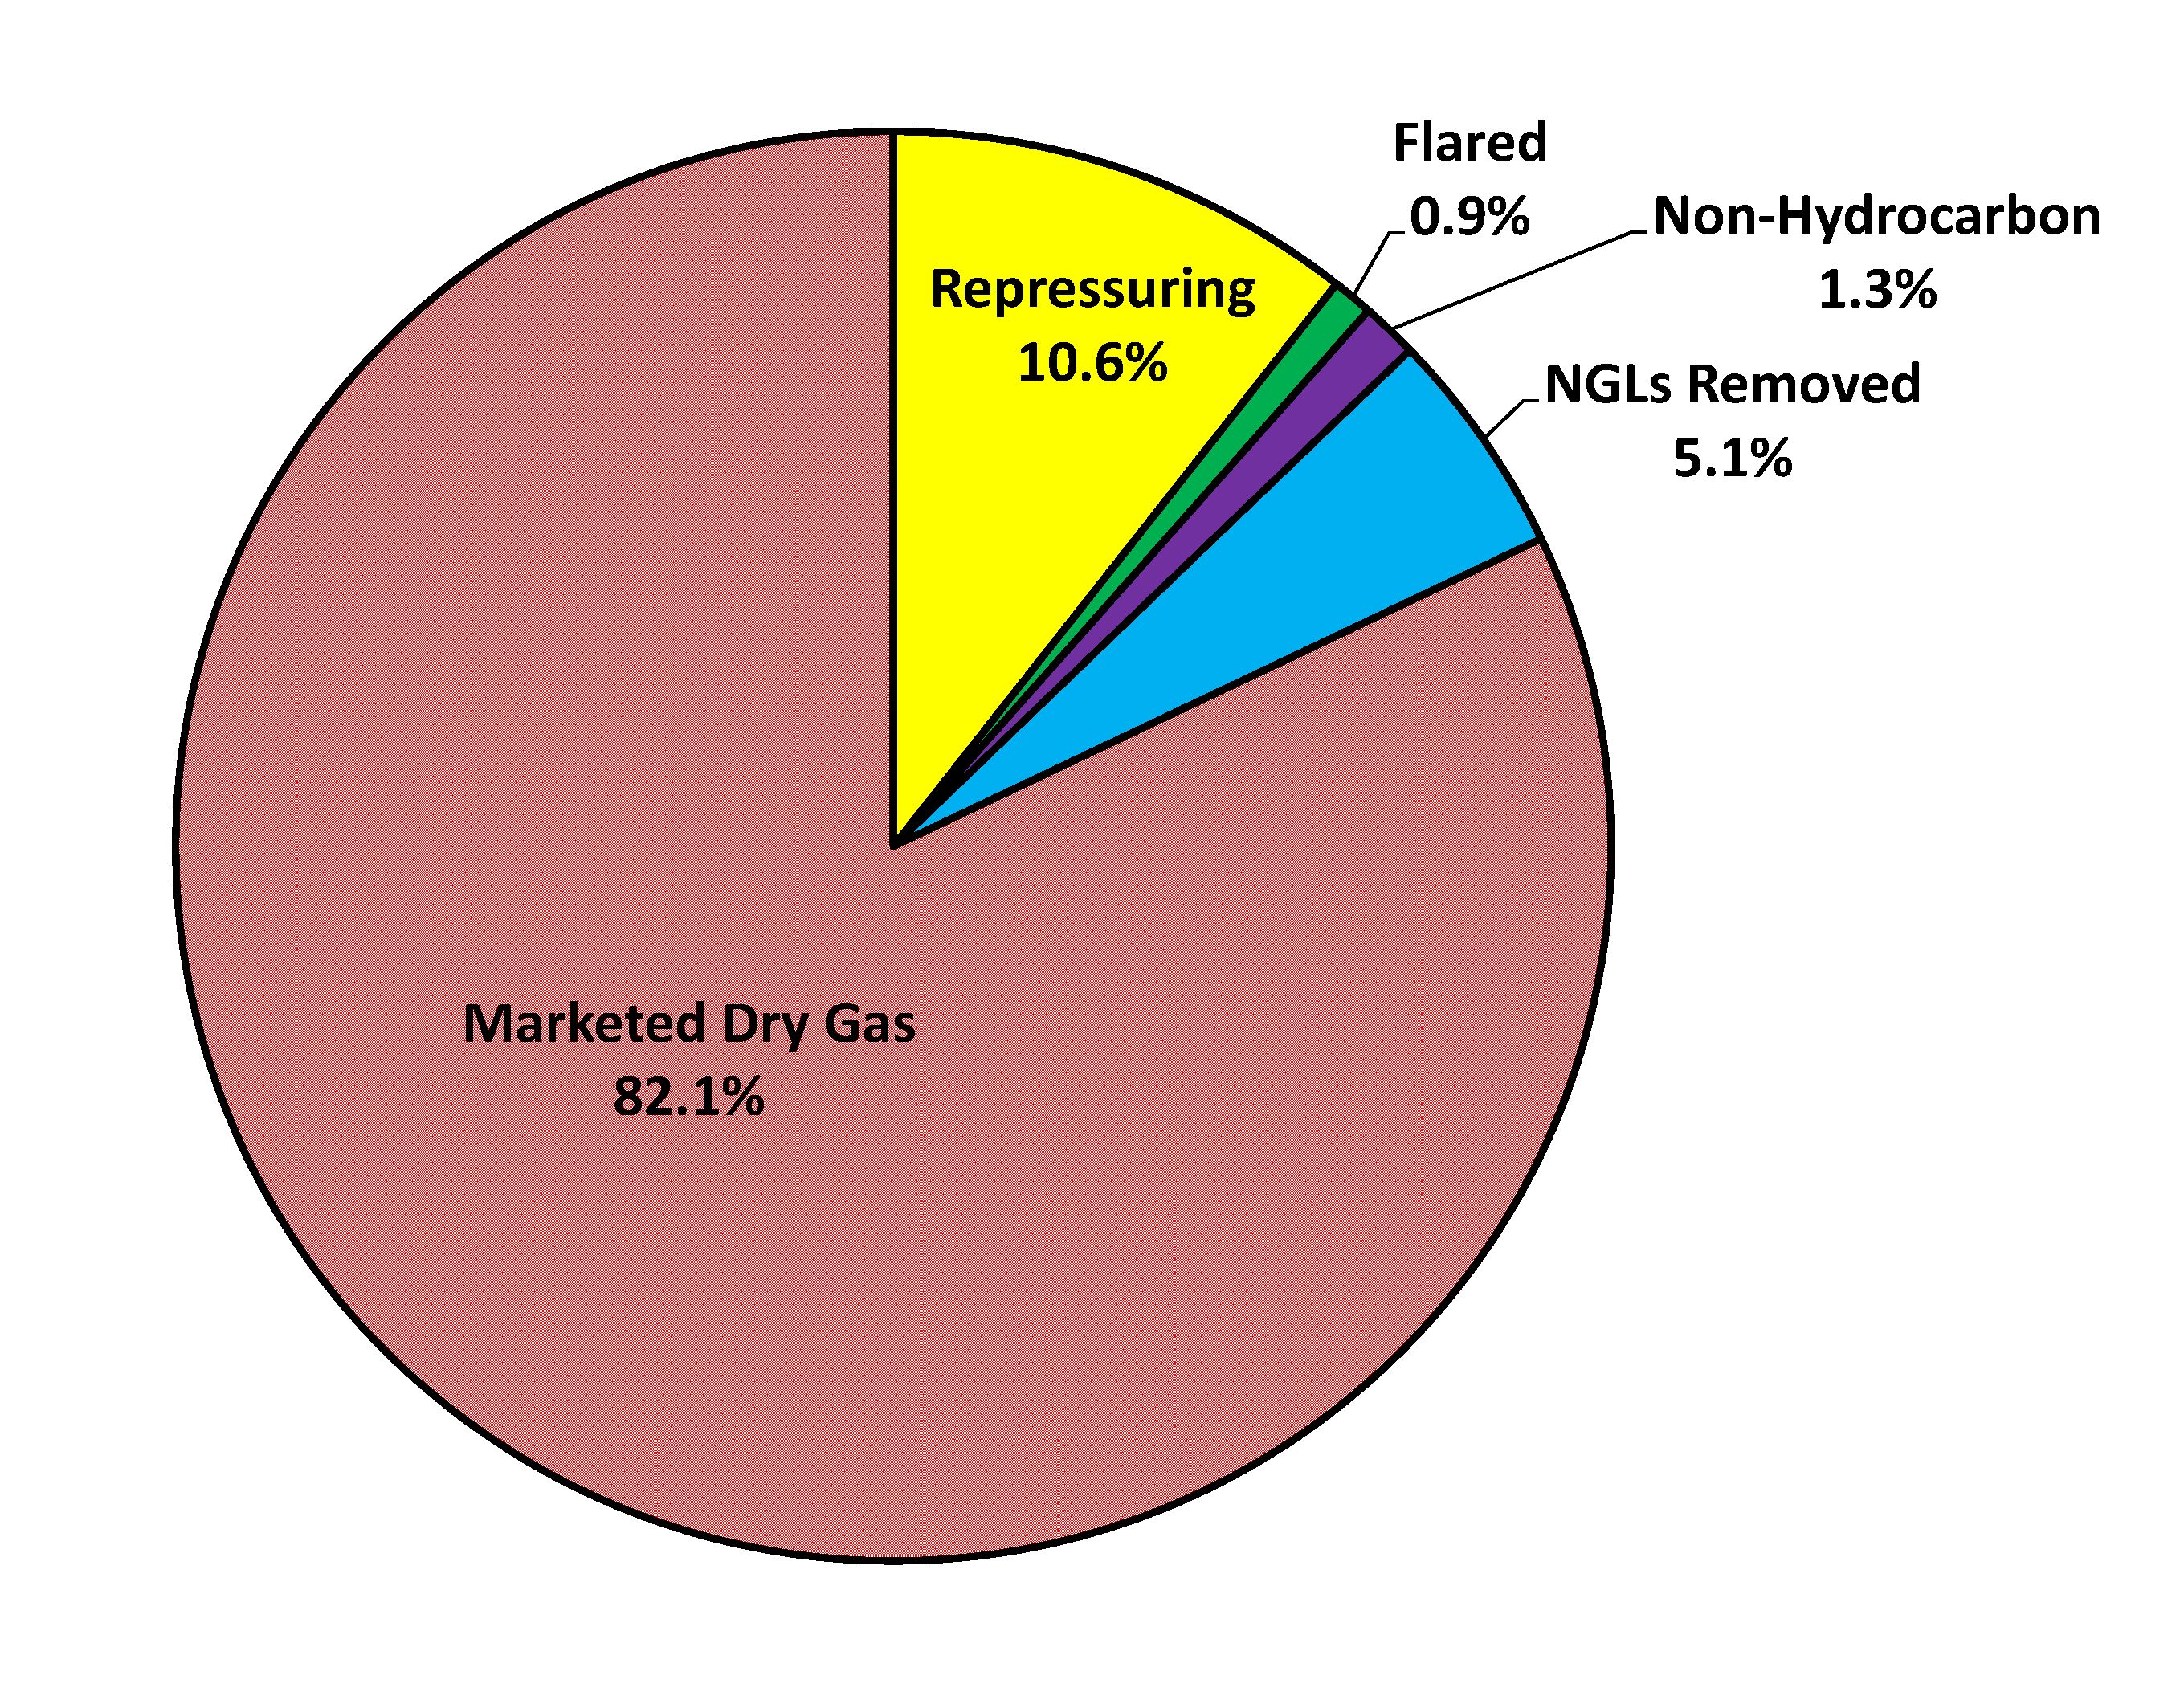 Eia Natural Gas Inventory Report